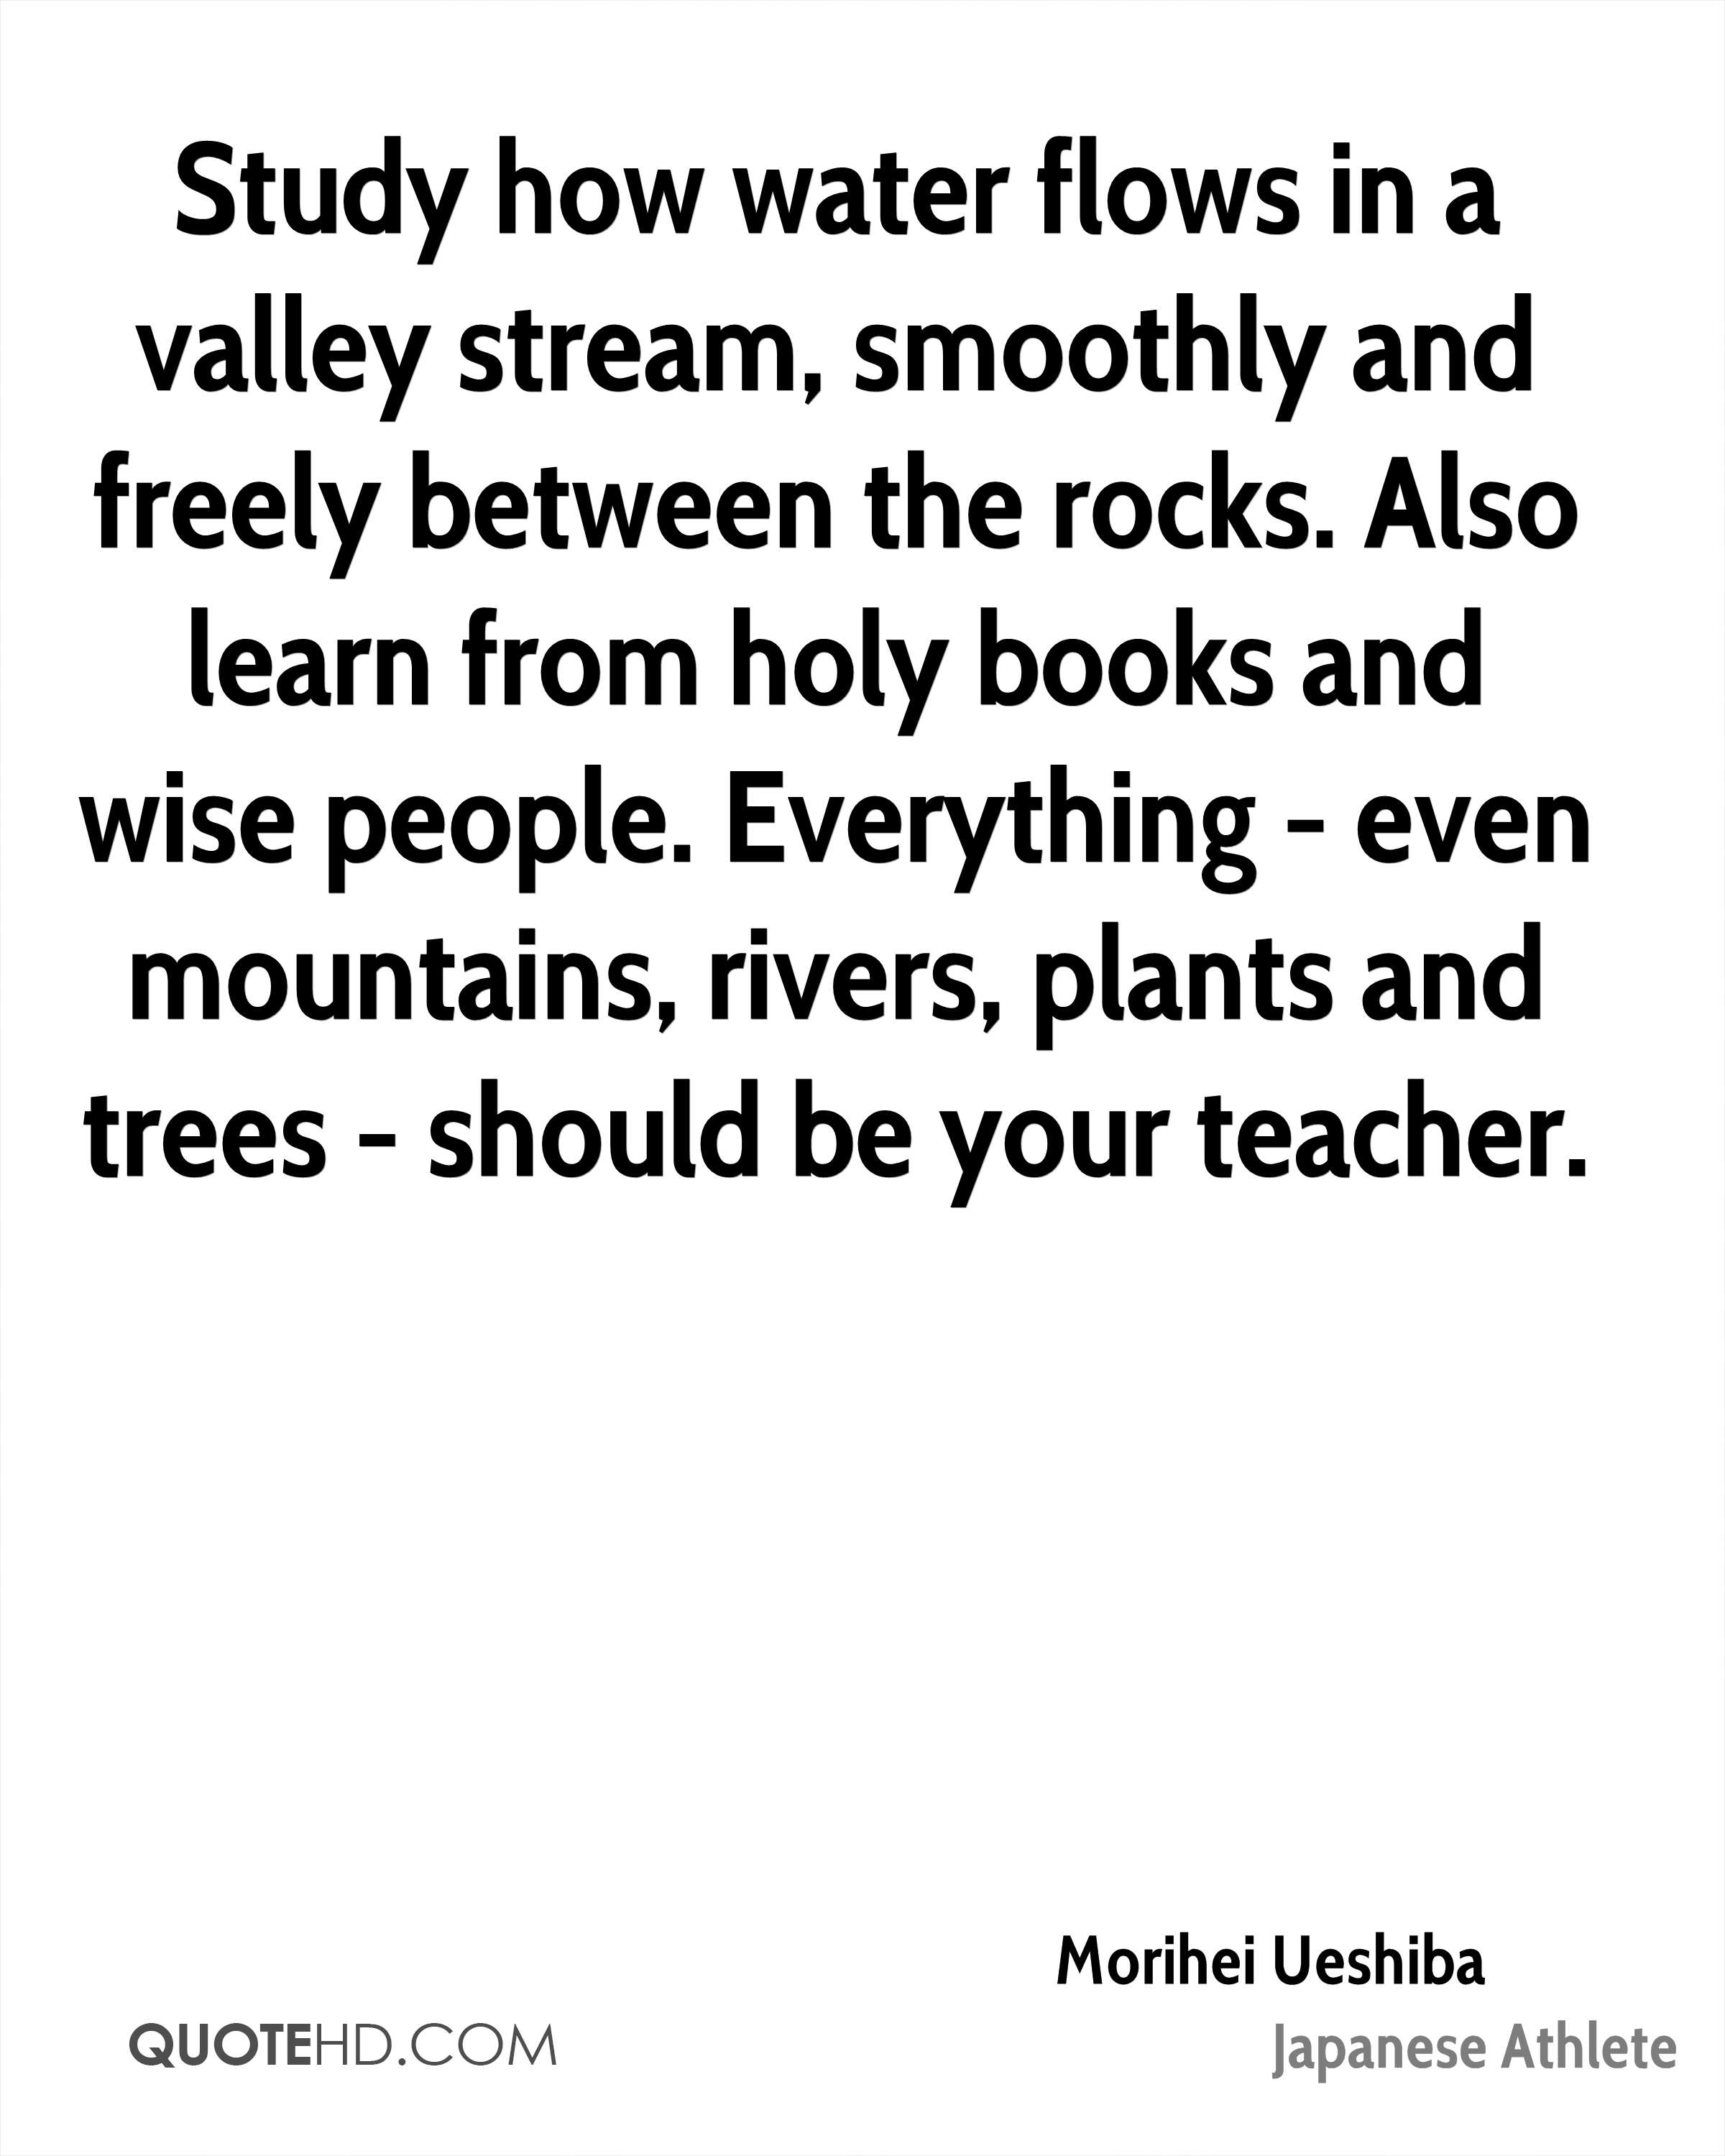 Study how water flows in a valley stream, smoothly and freely between the rocks. Also learn from holy books and wise people. Everything - even mountains, rivers, plants and trees - should be your teacher.